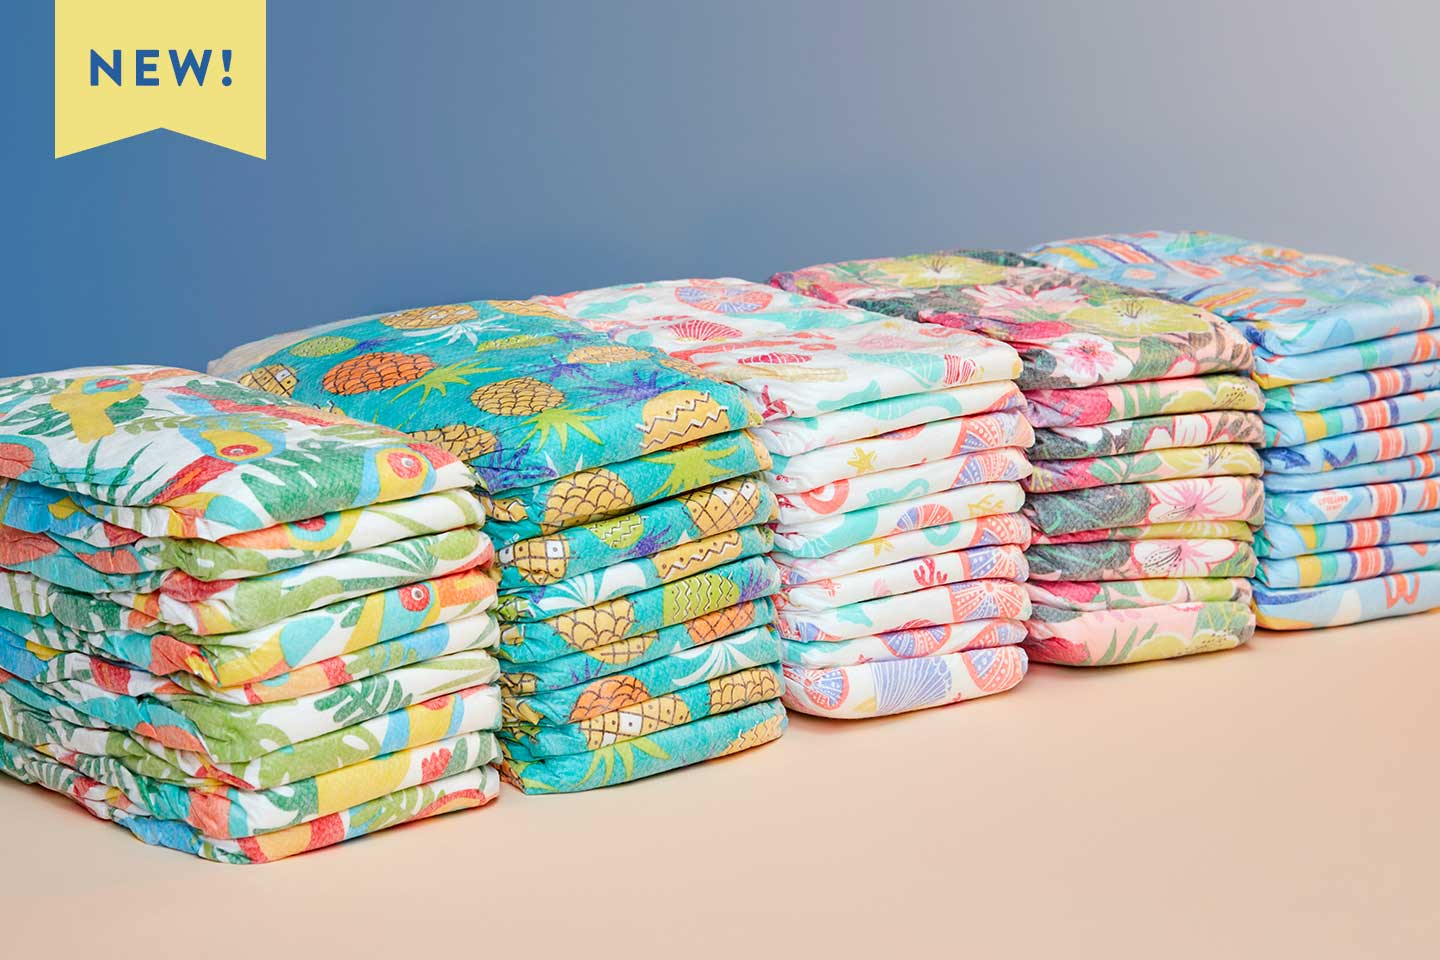 Diapers Disposable Baby Diapers The Honest Company